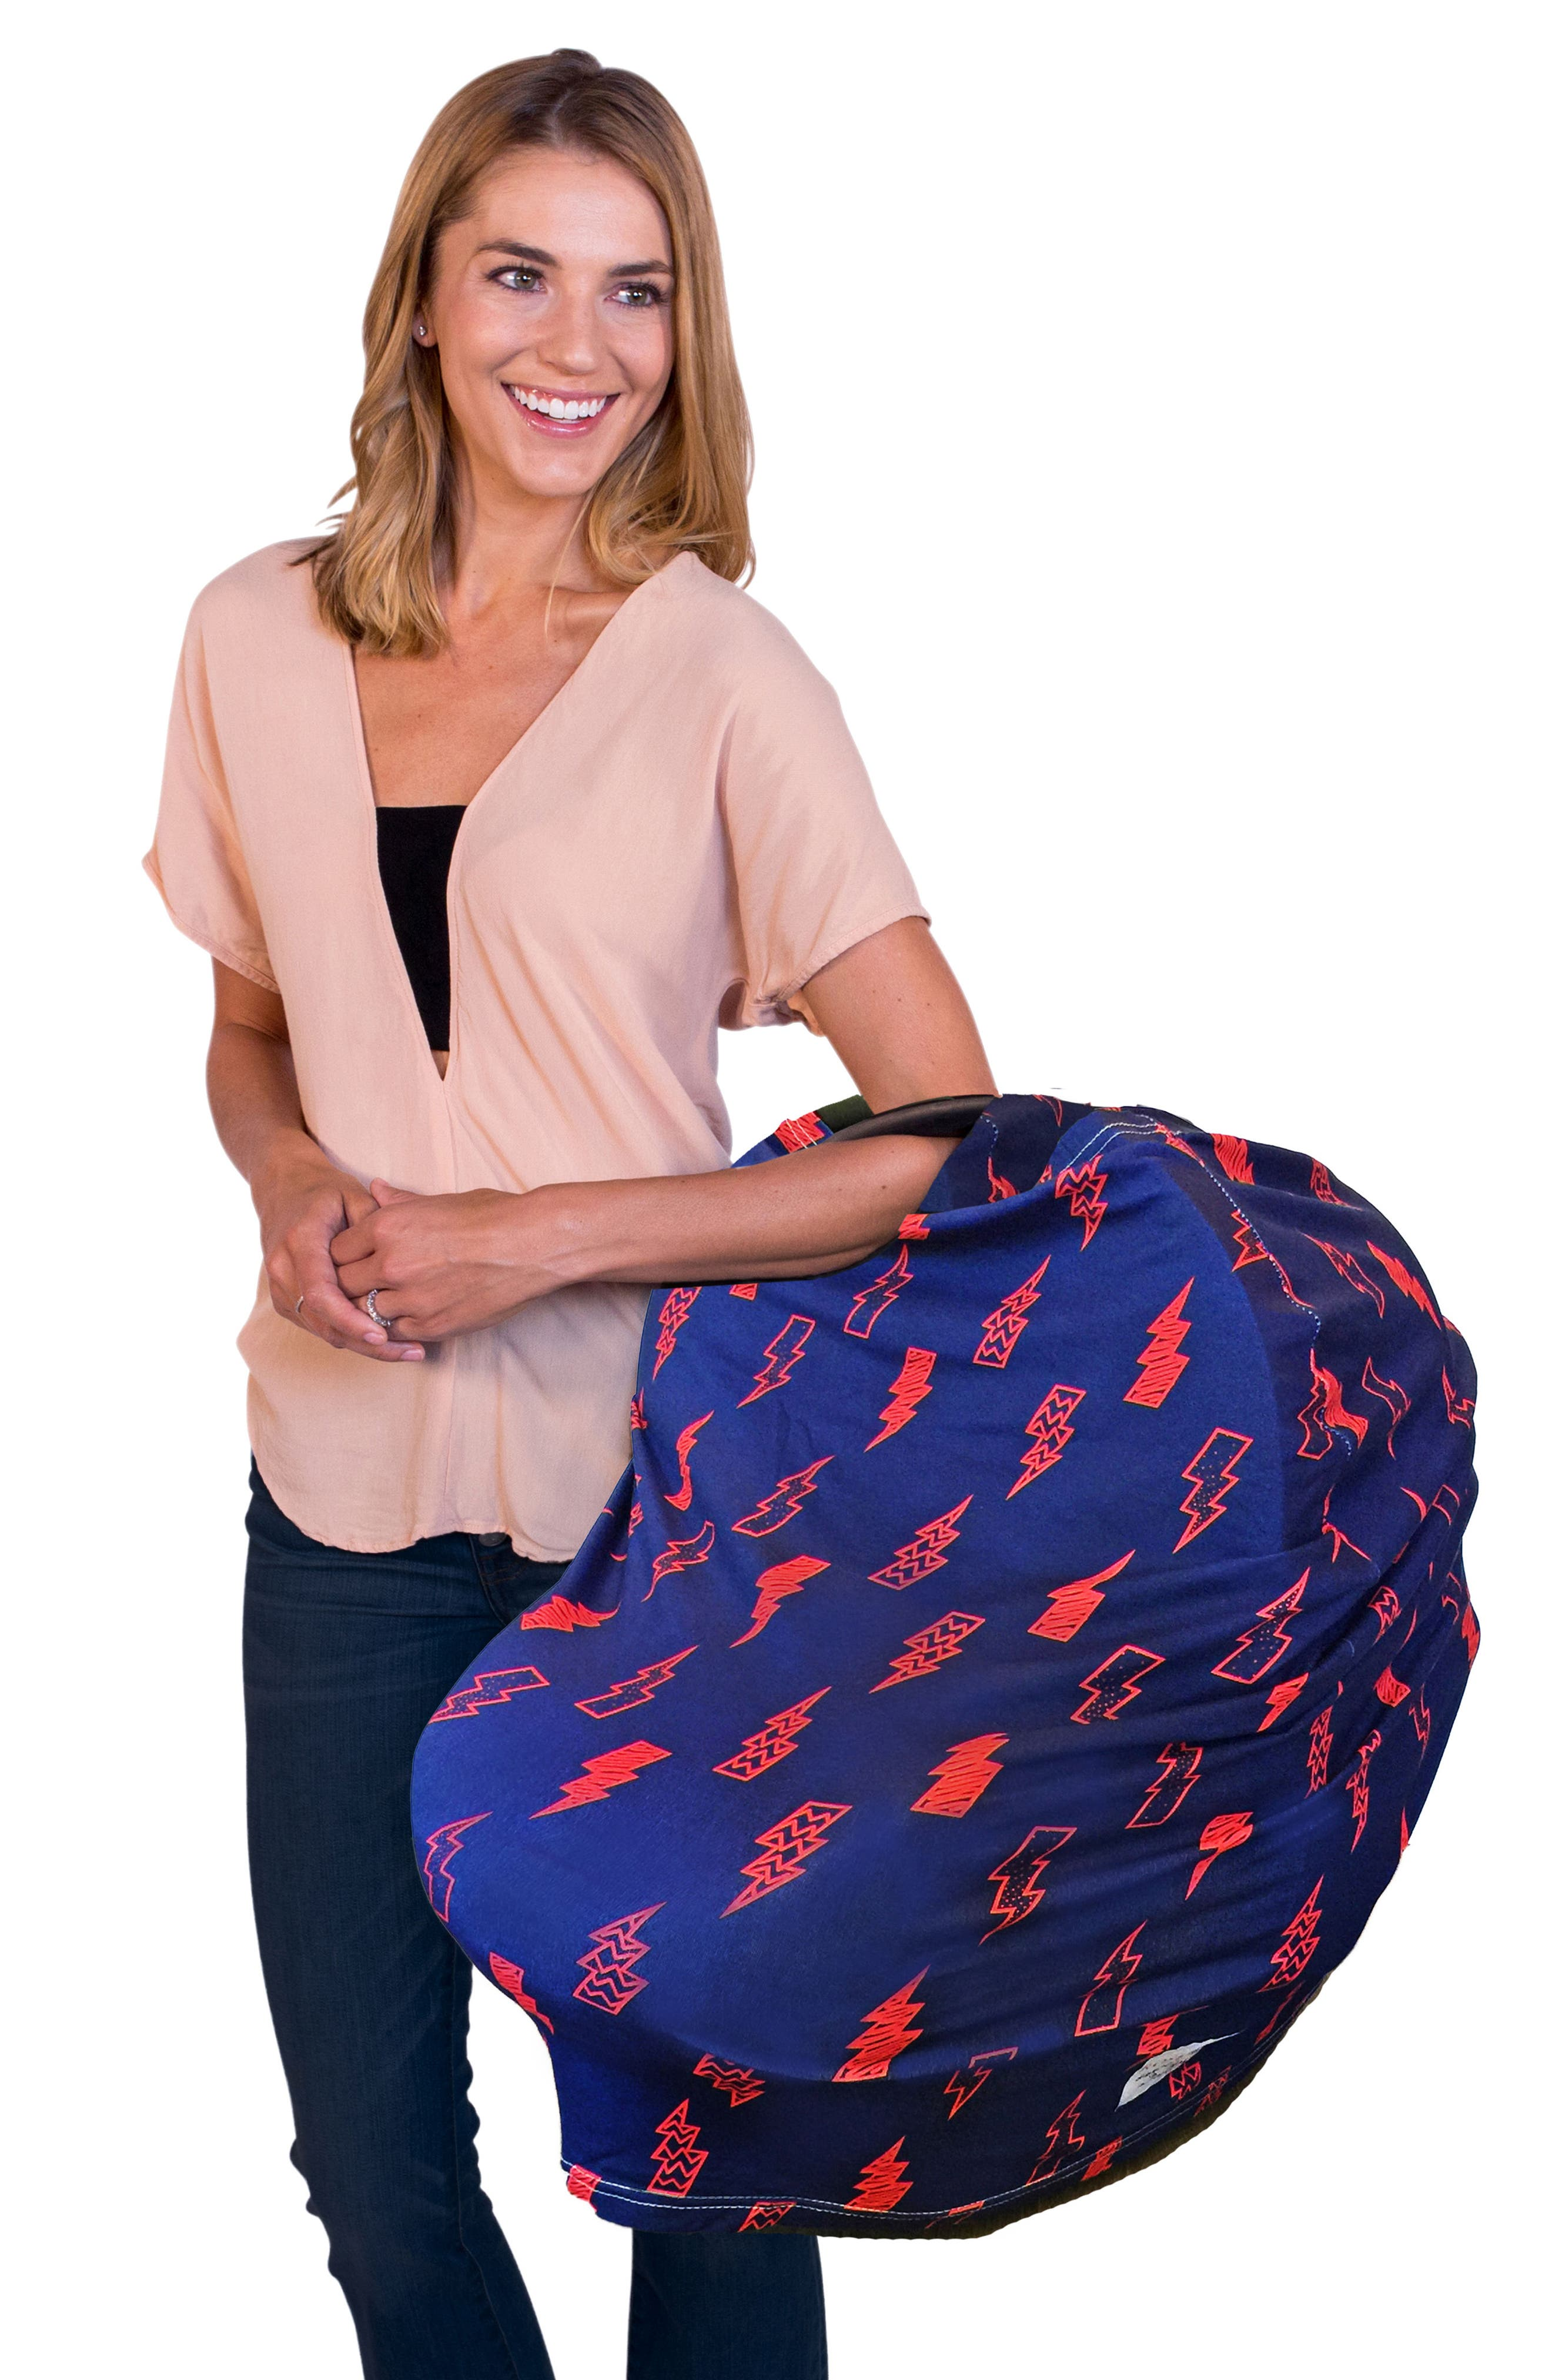 5-in-1 Car Seat Cover,                             Alternate thumbnail 8, color,                             BLUE/ RED LIGHTNING BOLTS